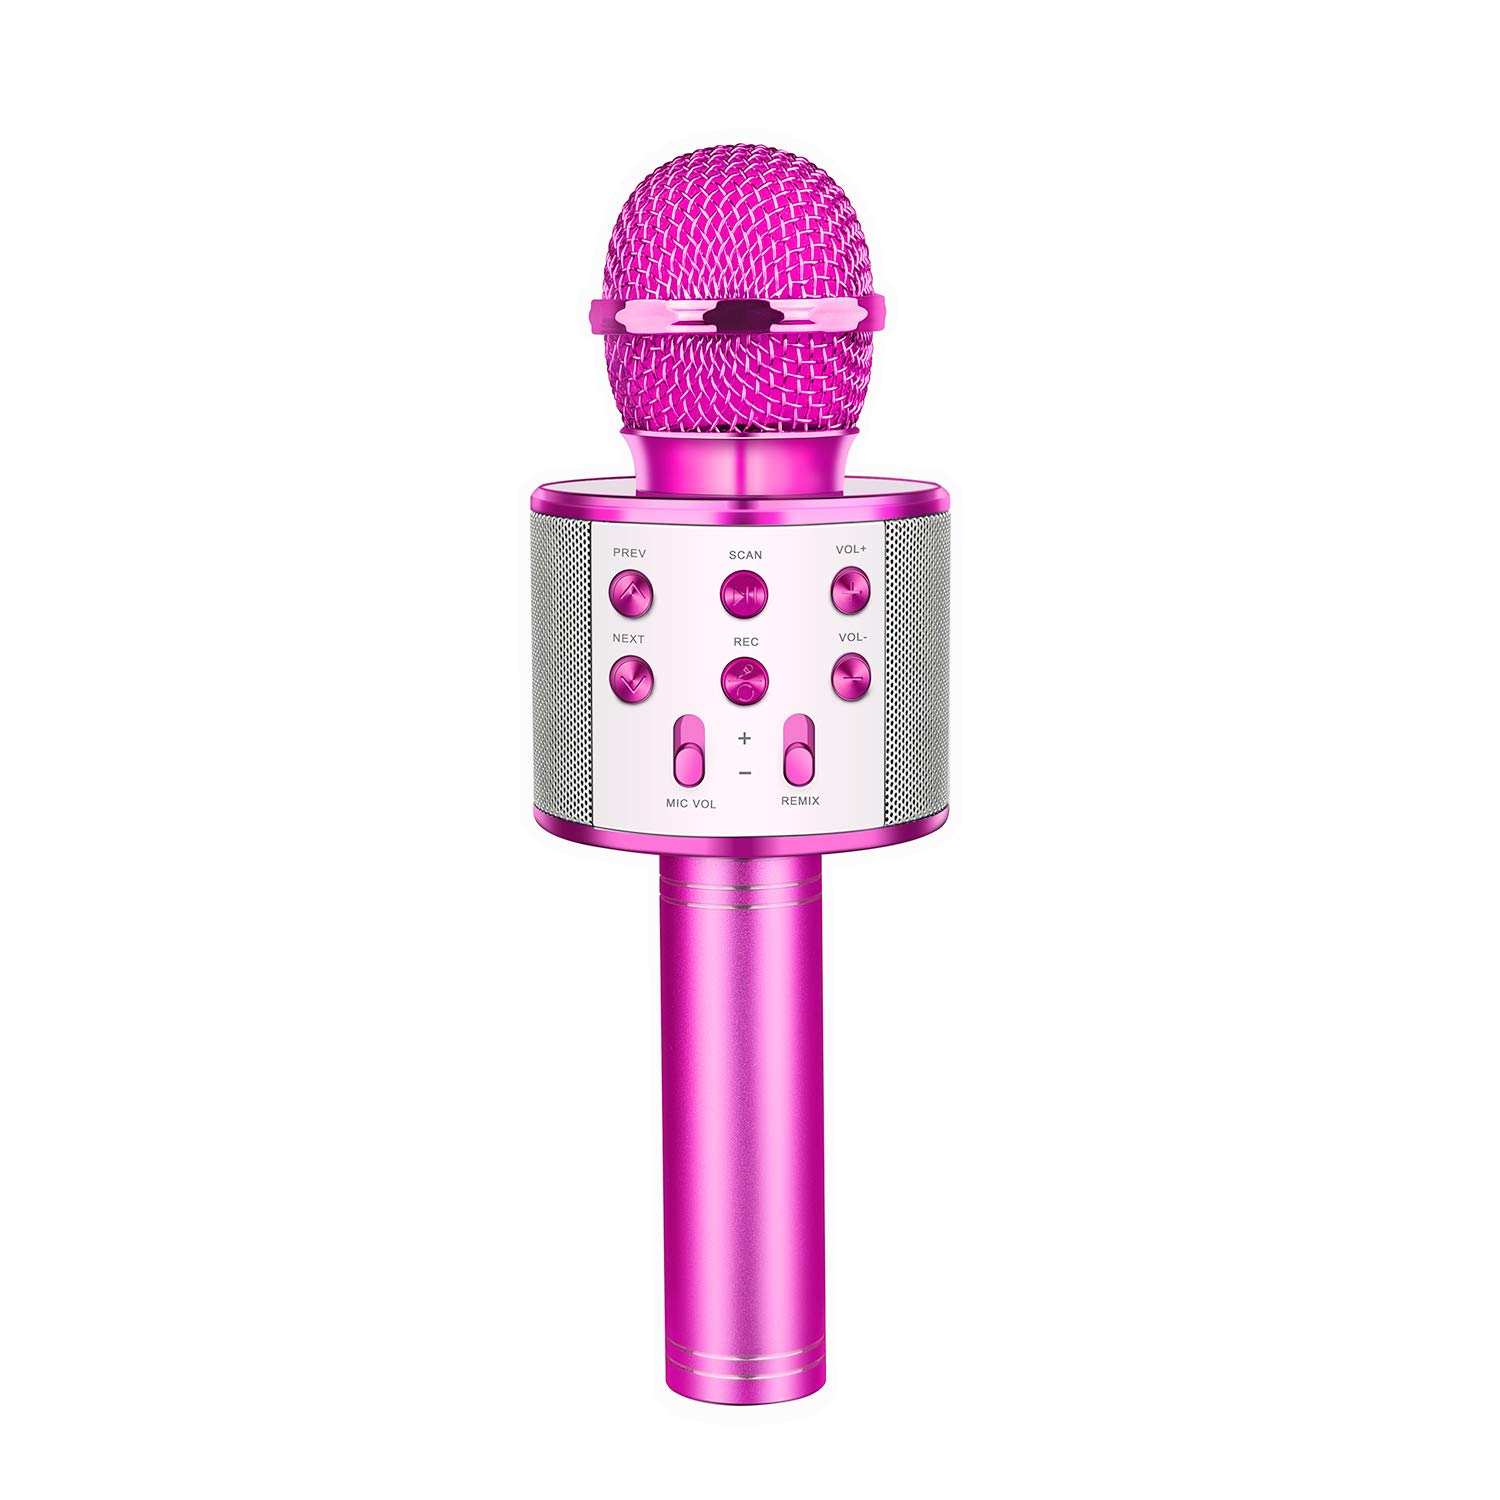 OPO Karaoke Microphone Wireless with Bluetooth, Portable Handheld Mic Speaker Home, Party Singing Compatible with iPhone/Android/PC (Purple) by OPO